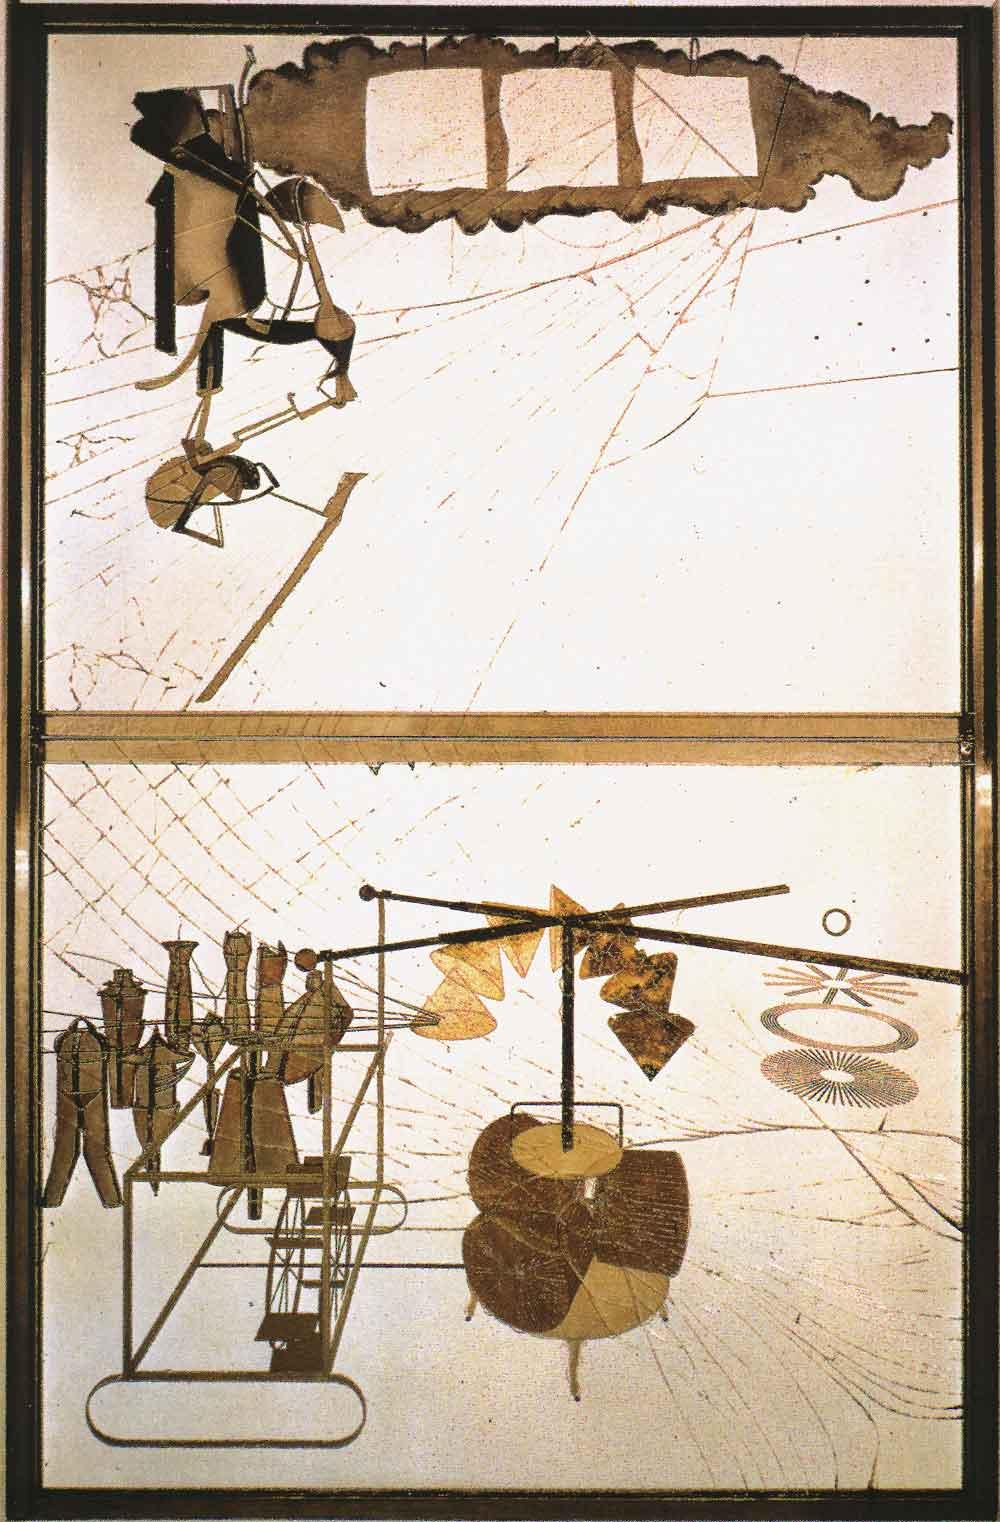 duchamp-1915-23-large-glass